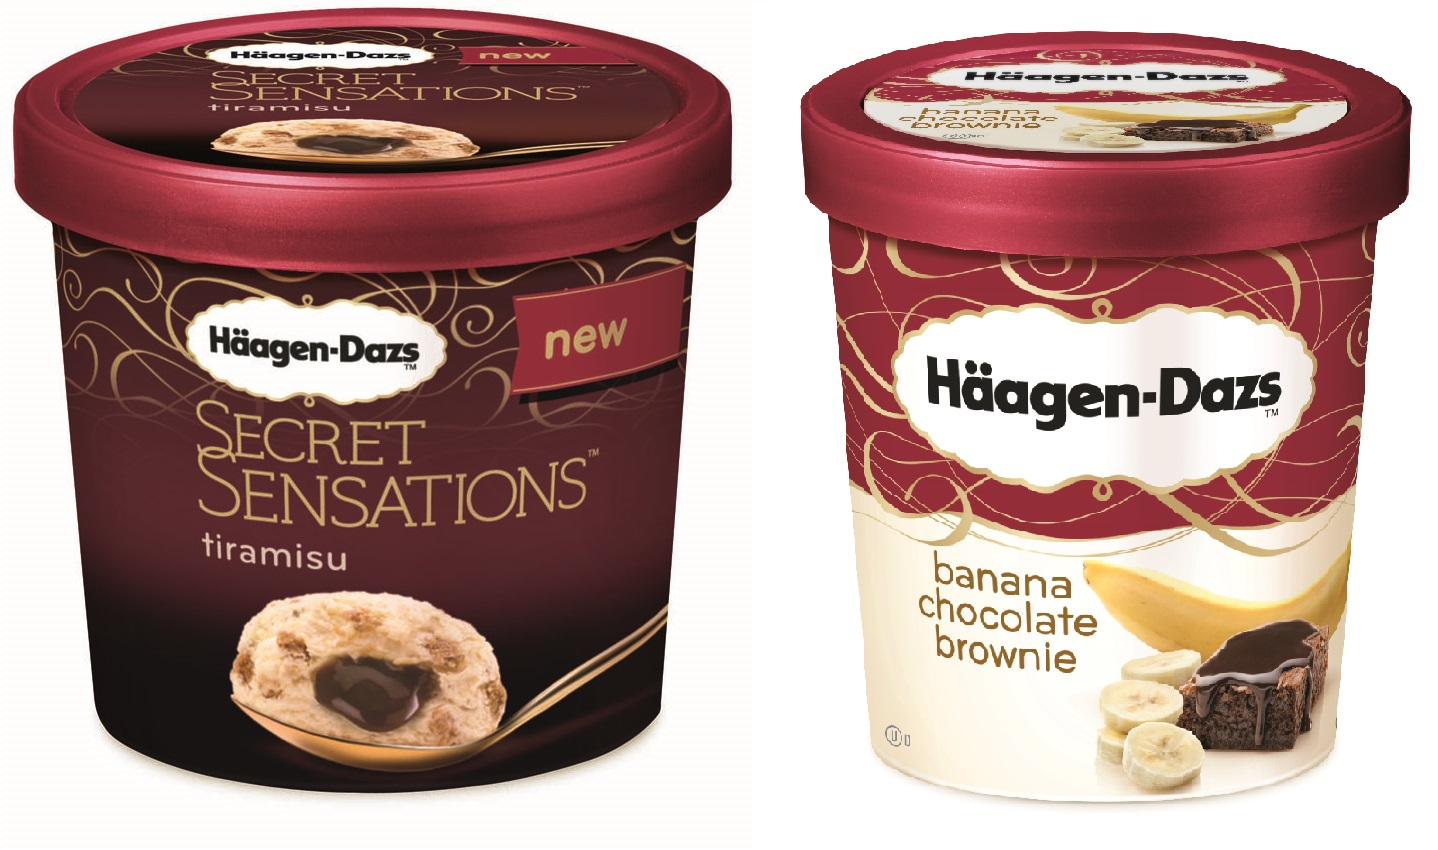 Häagen Dazs secretsensationtiramisubananabrownie